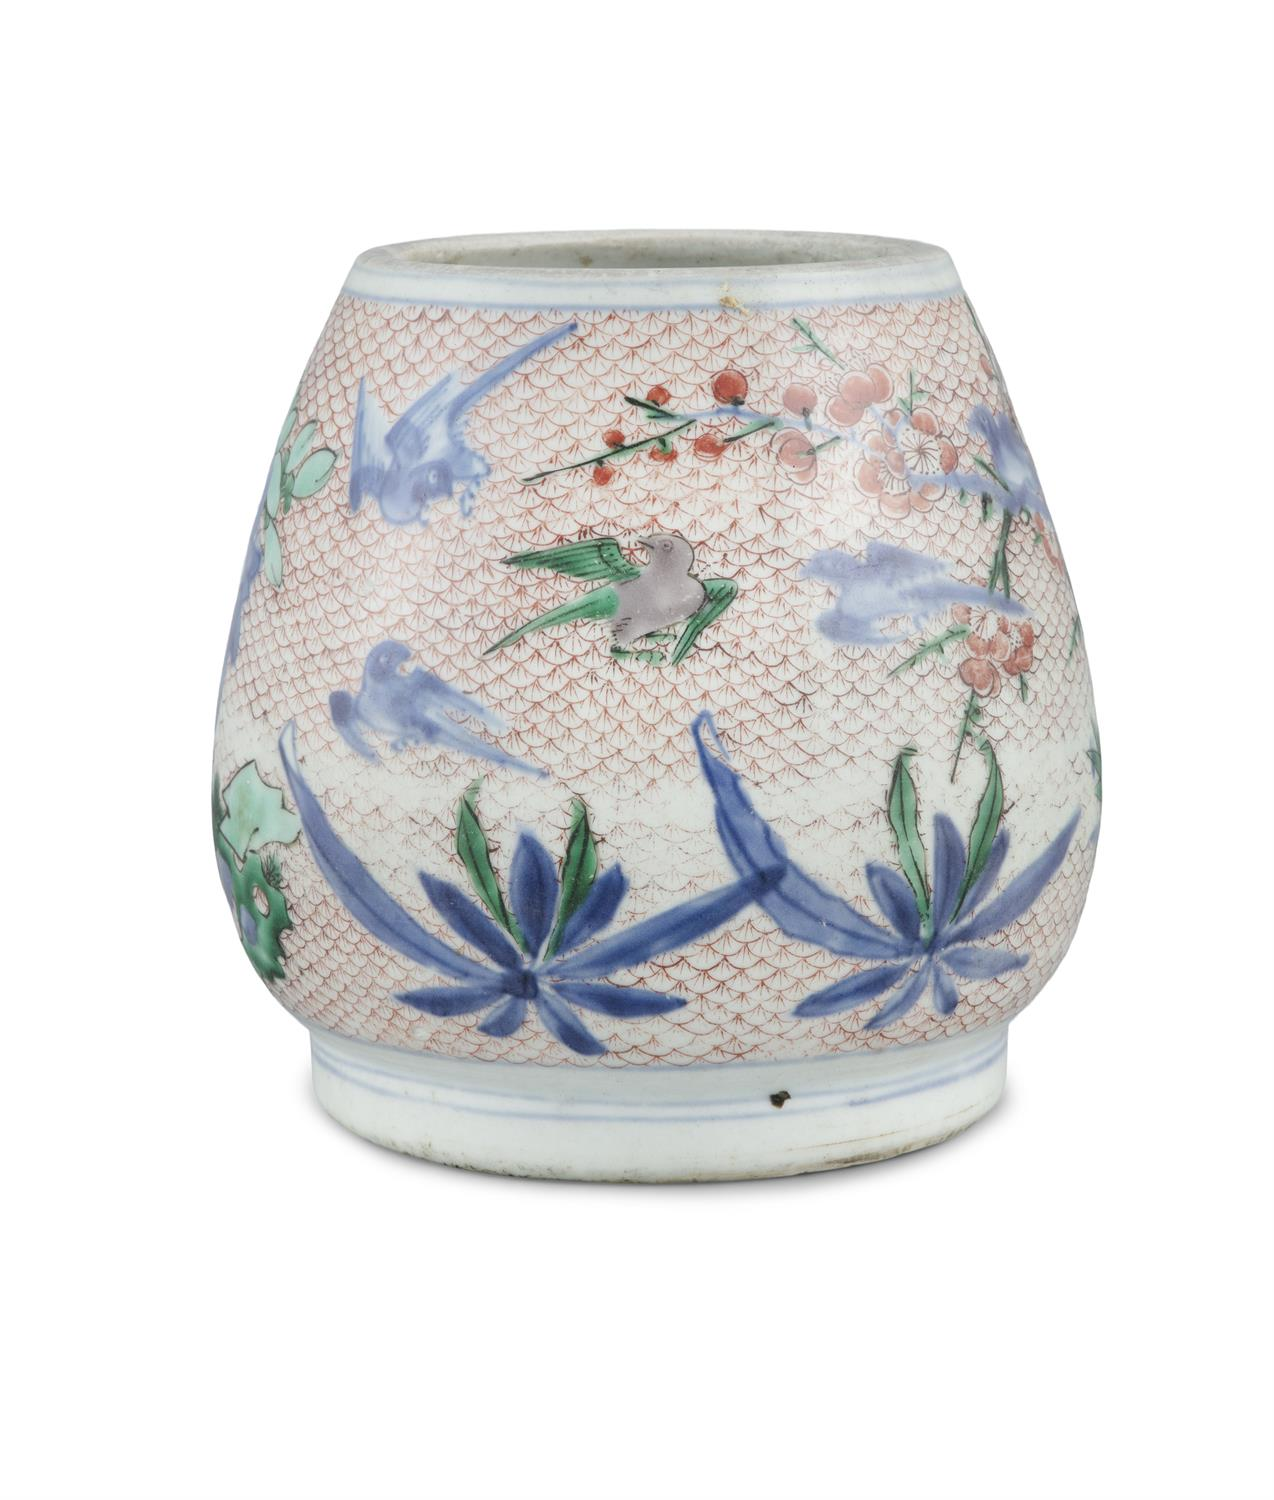 AN IMARI-PALETTE EGG-SHAPED 'MAGPIES AND PLUM' PORCELAIN WATER POT Japan, Meiji period Richly - Image 4 of 6